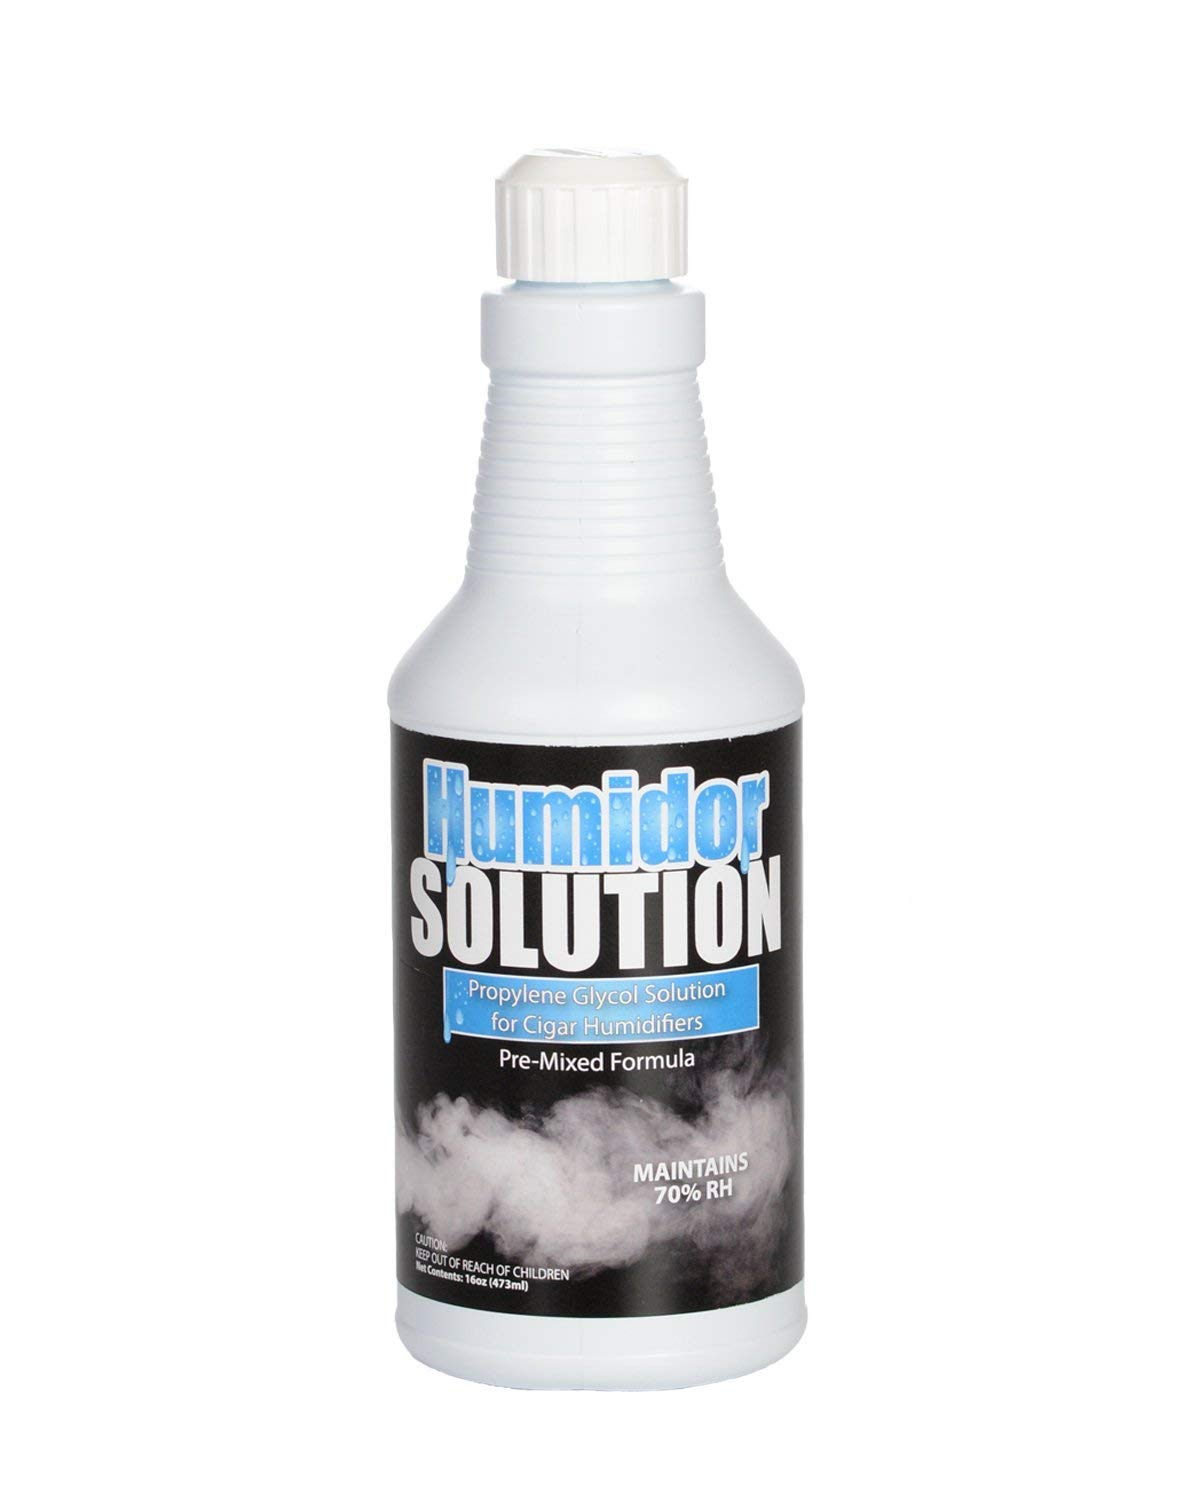 Cigar Humidor Solution - Pre-Mixed 50/50 Propylene Glycol for Humidifiers - 16oz Pint with Easy Pour Spout